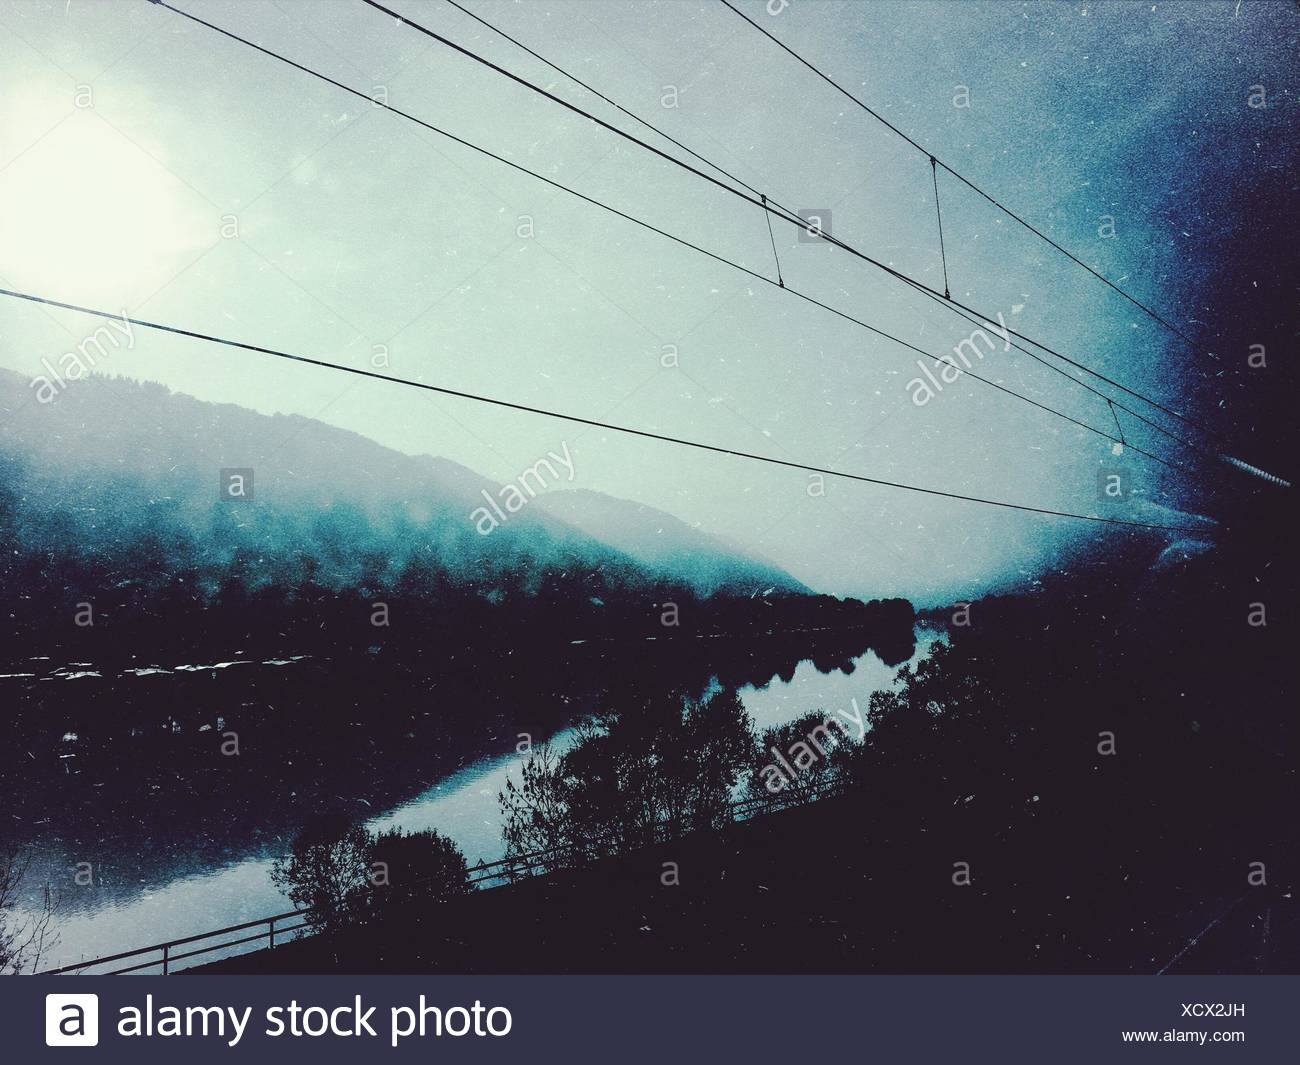 Power Line Along River - Stock Image